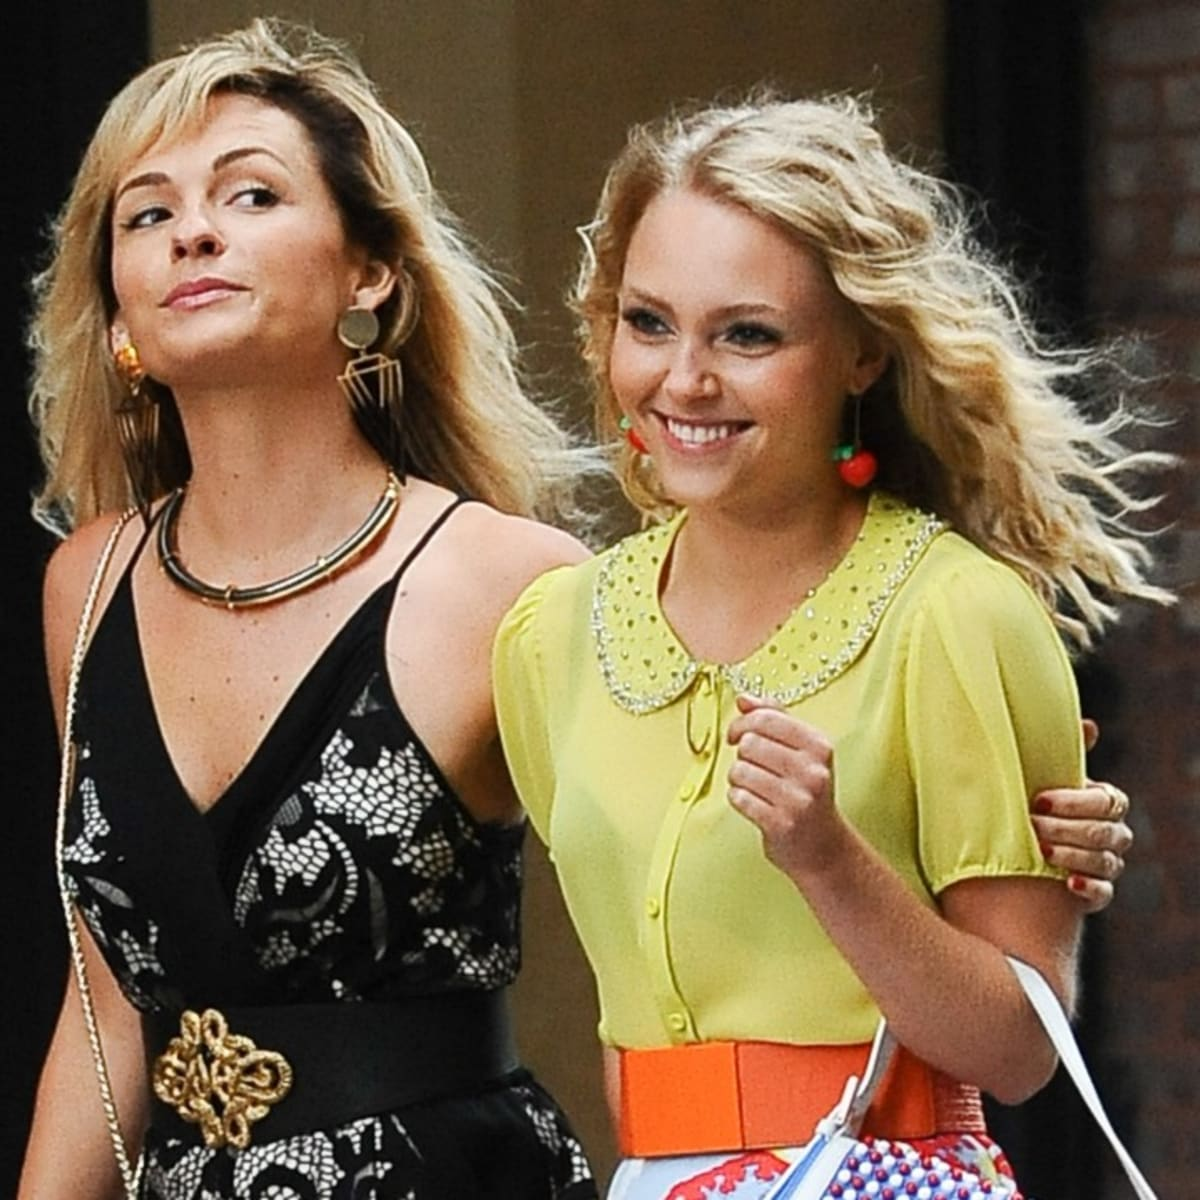 How I Shop: AnnaSophia Robb - Fashionista